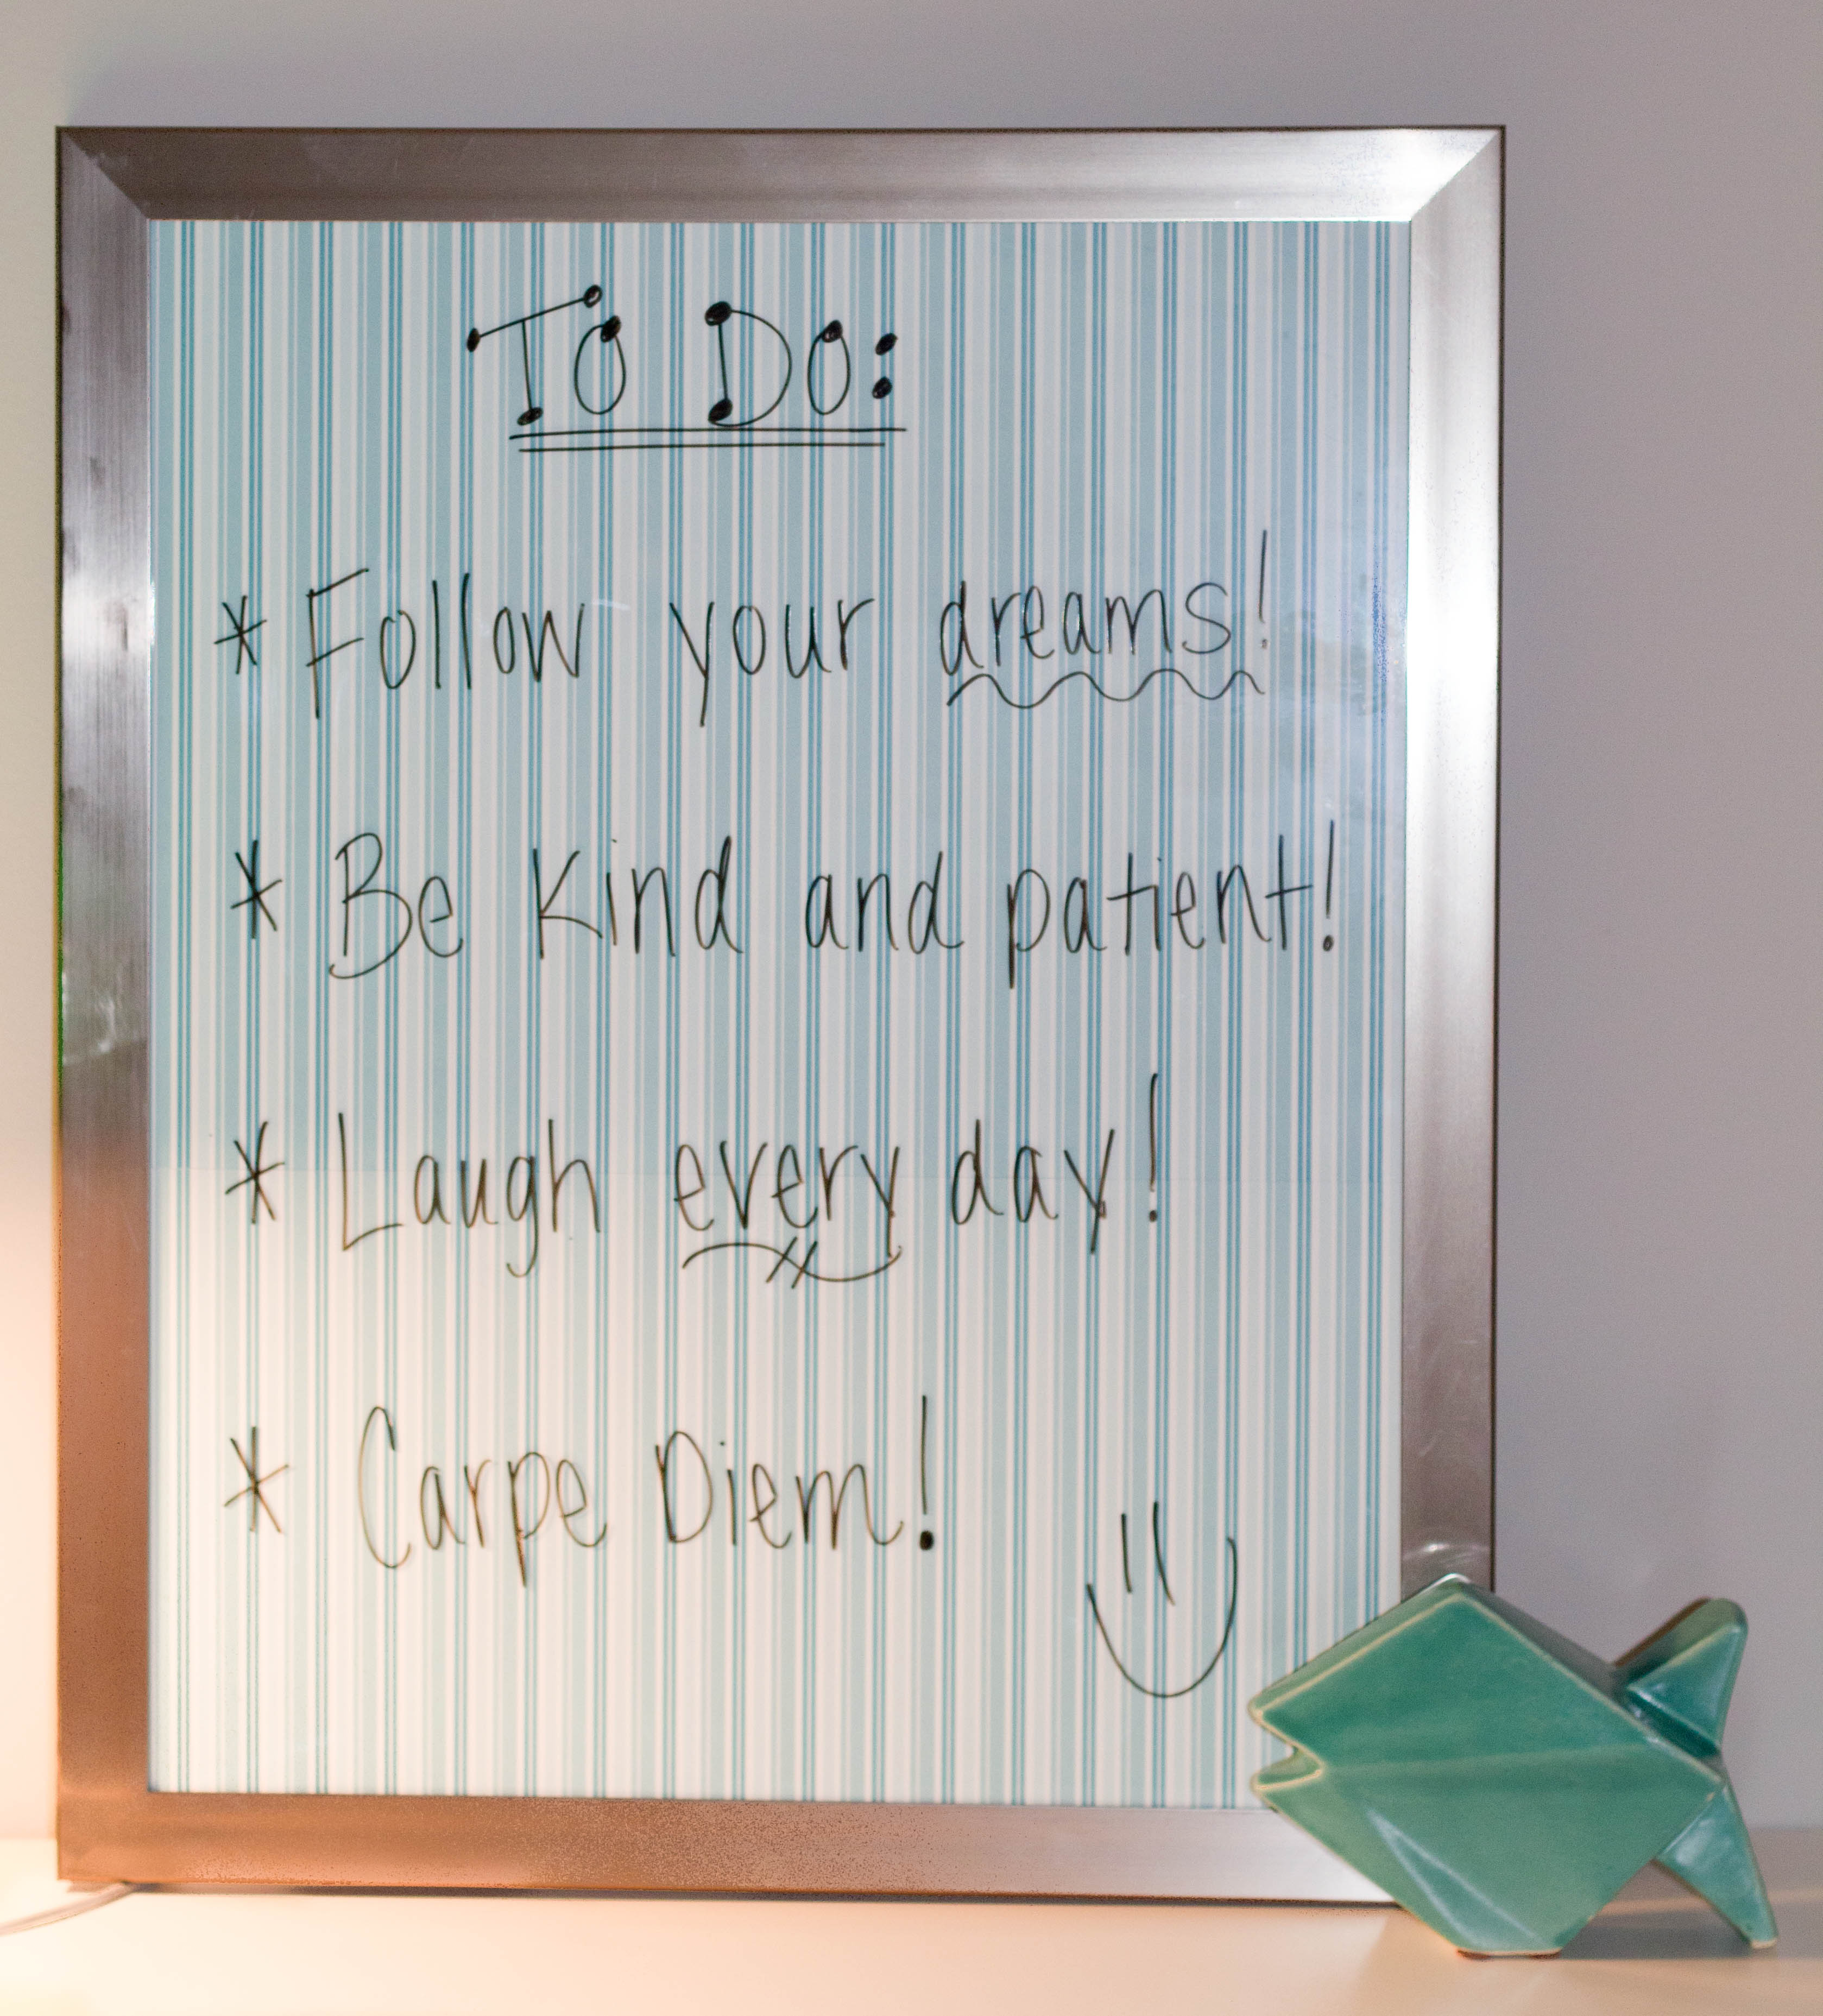 http://thethreadaffect.com/pinterest-to-personal-dry-erase-board/